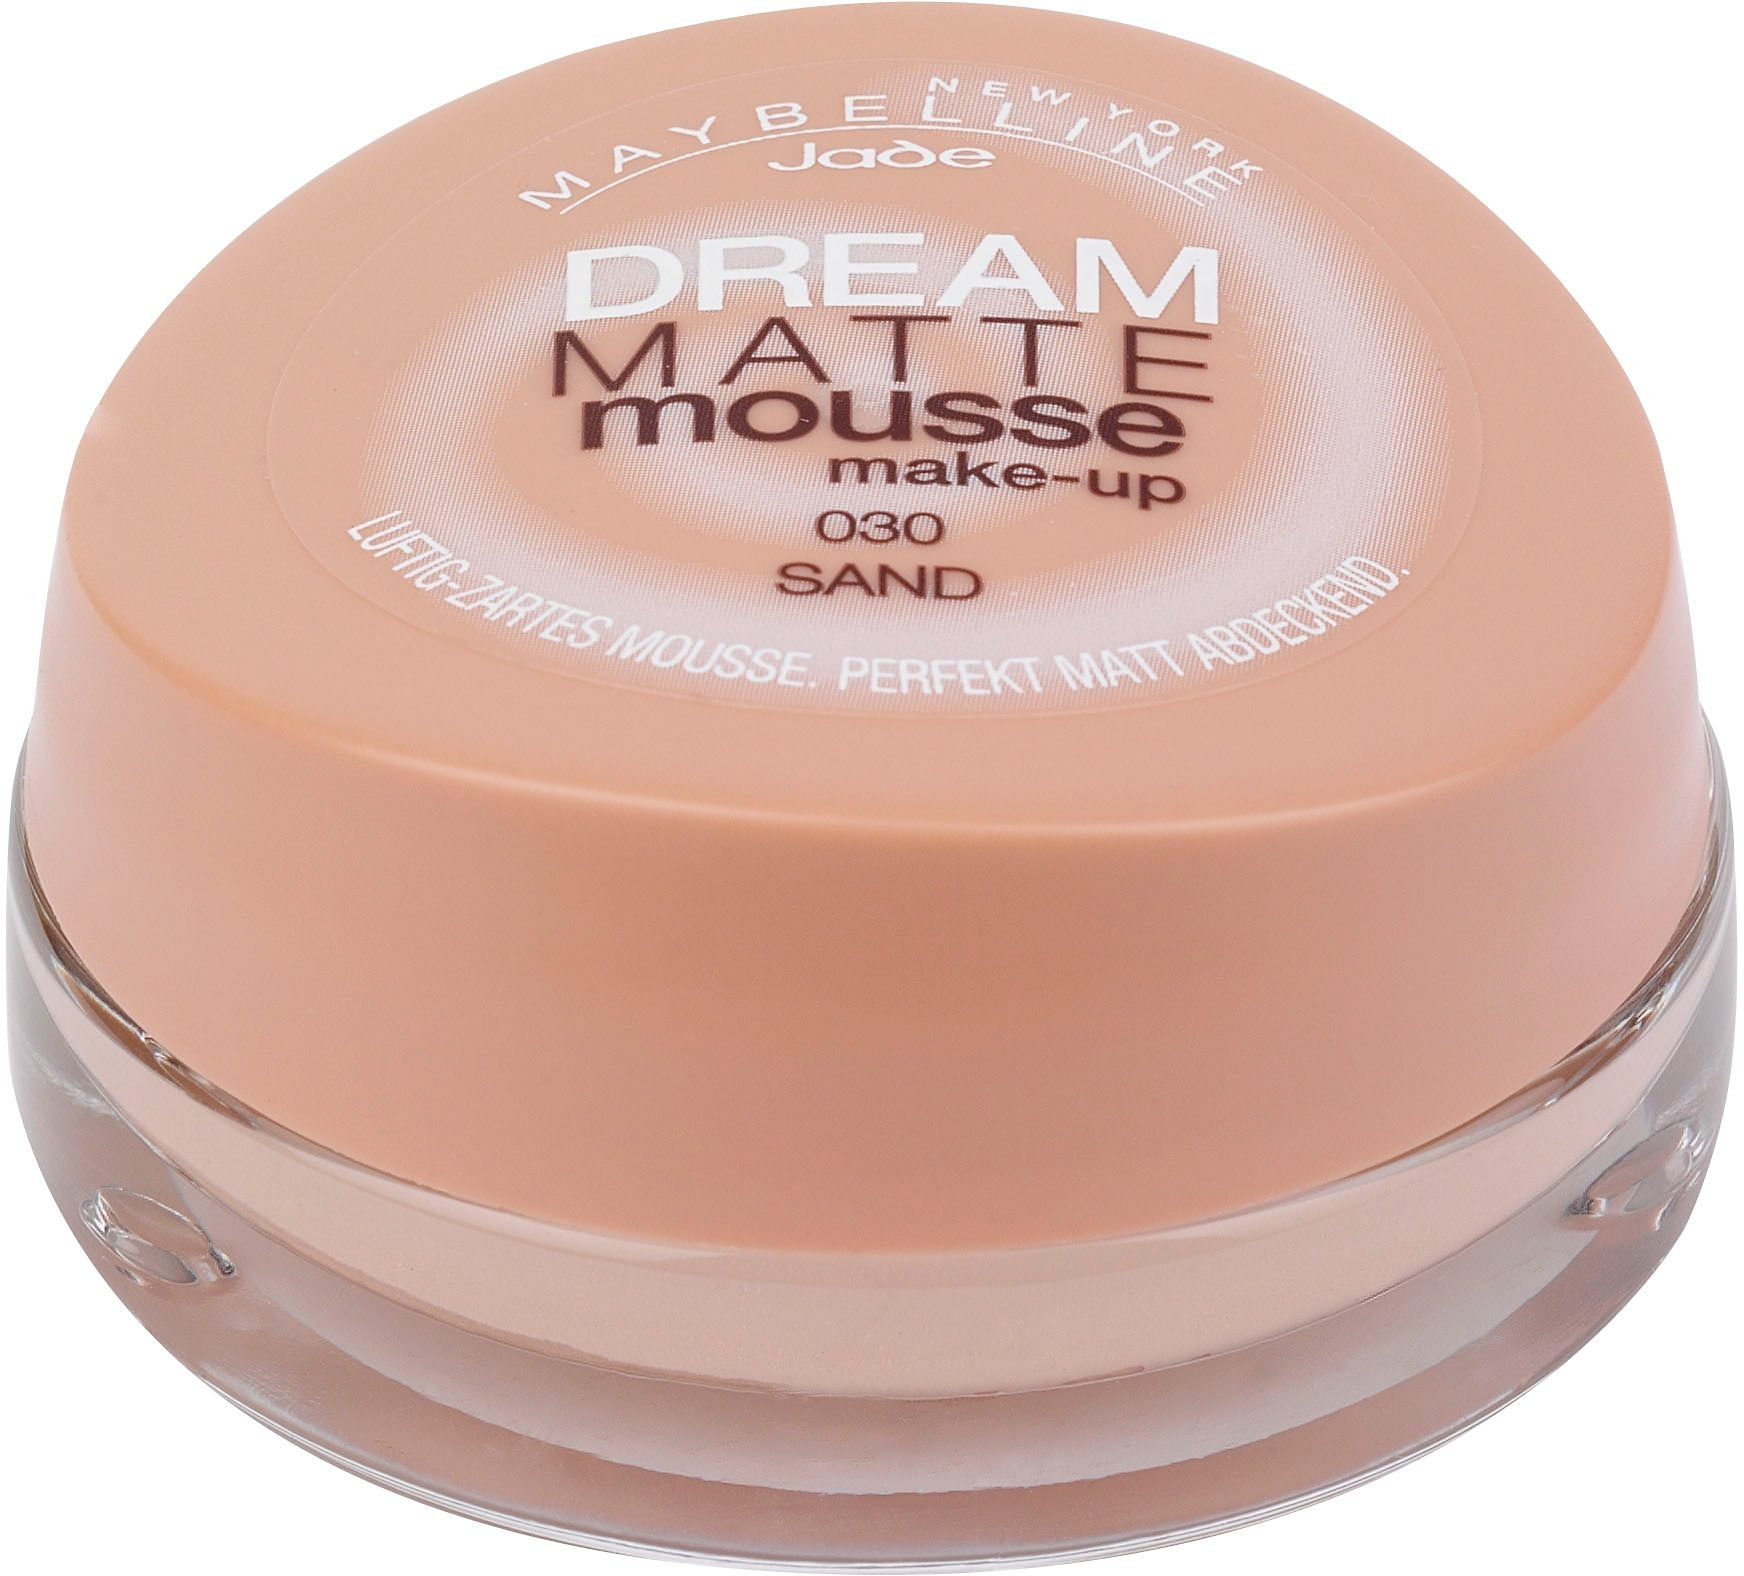 Maybelline New York, »Dream Matte Mousse Make-up«, Foundation